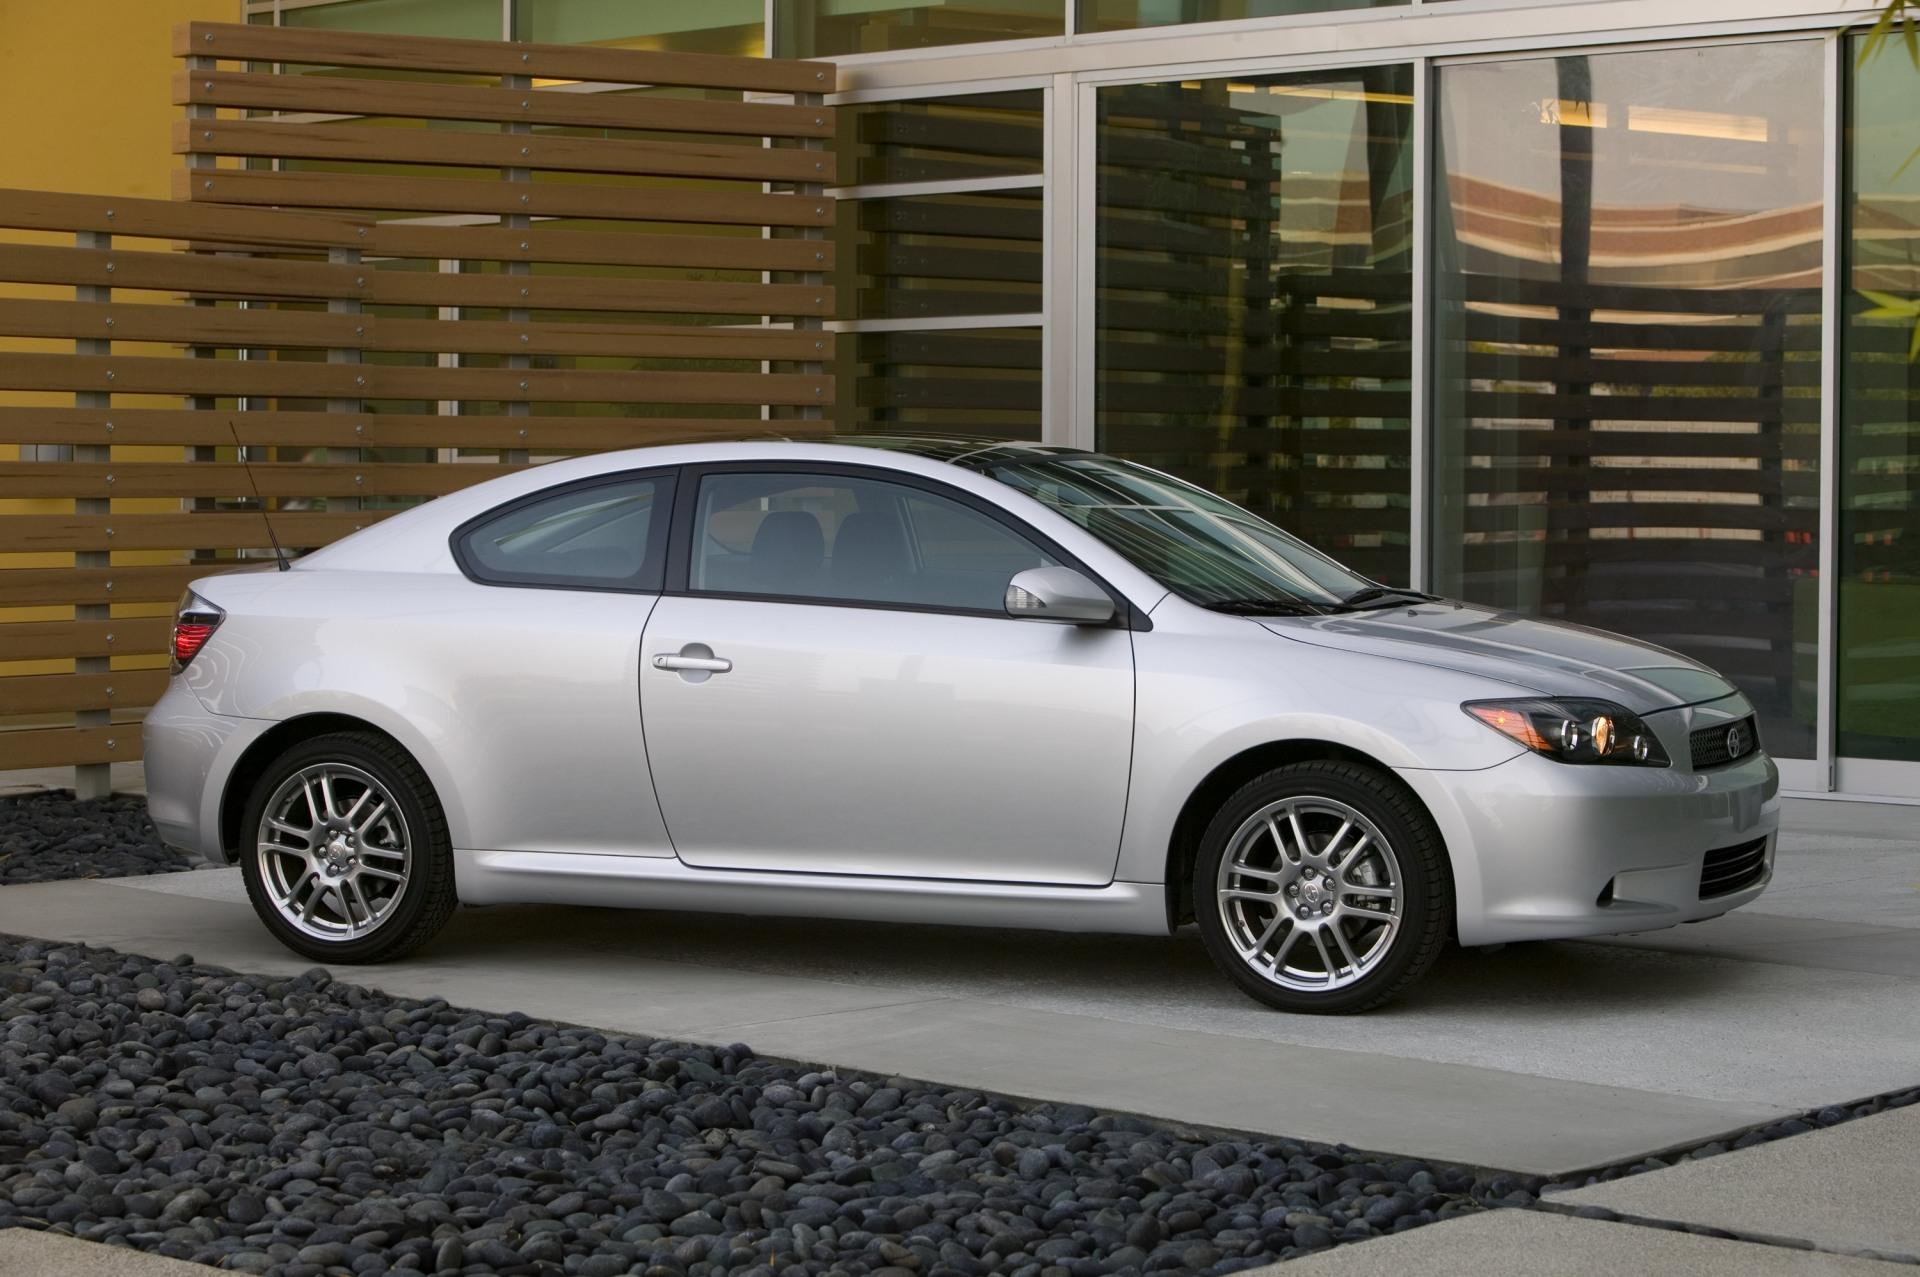 Scion Tc Coupe Exterior Image